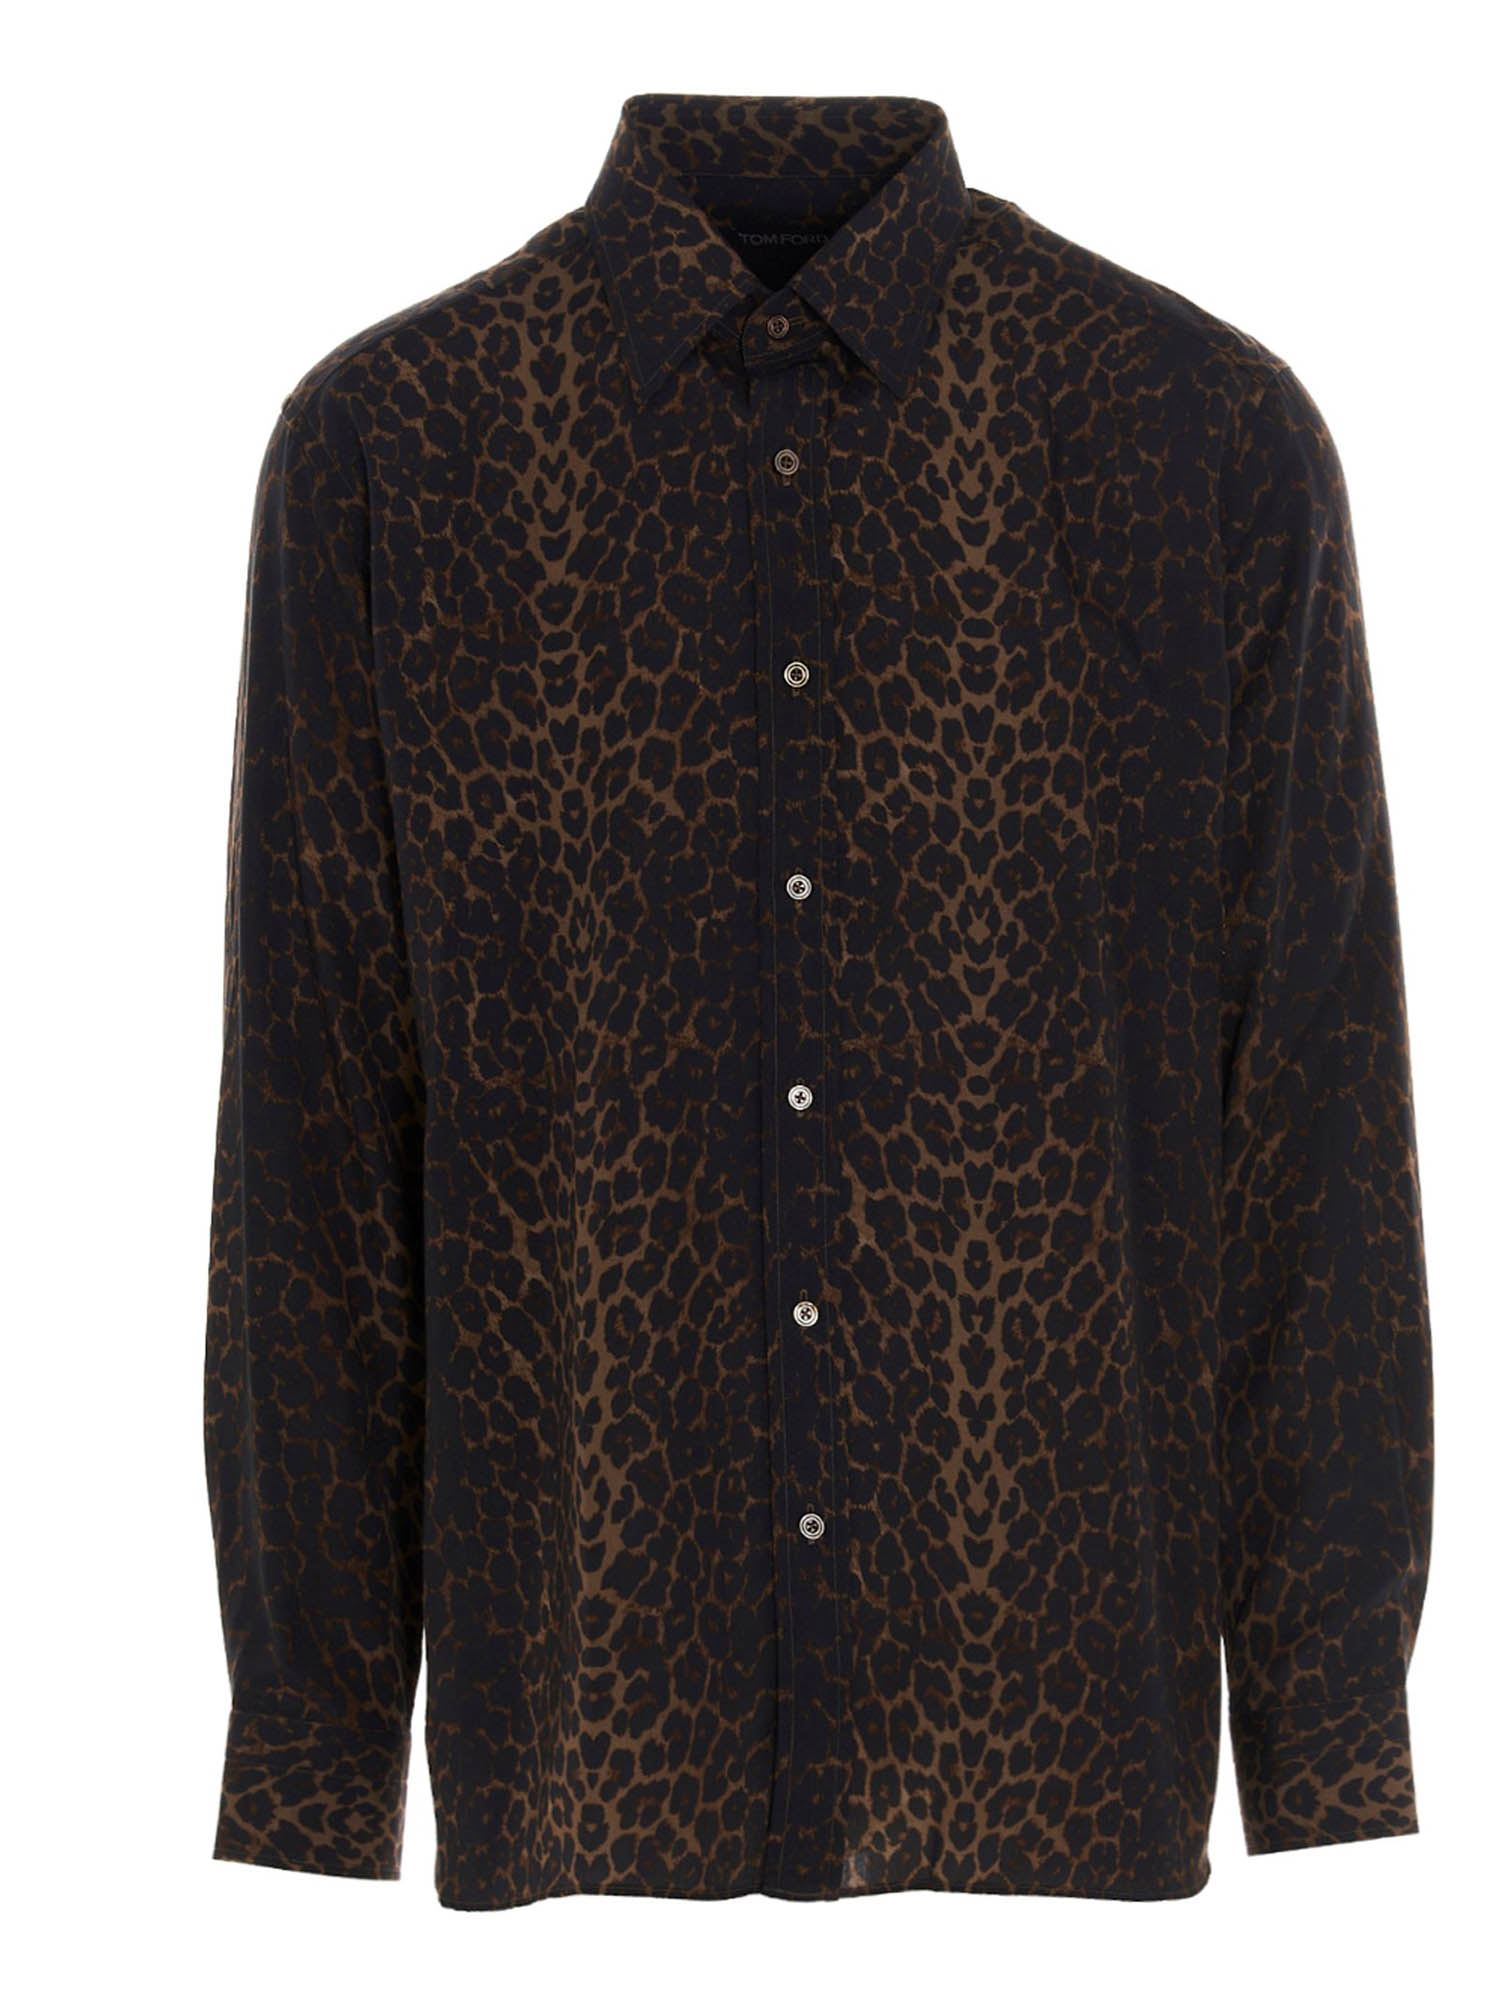 Tom Ford Shirts ANIMALIER PRINTED SHIRT IN BROWN